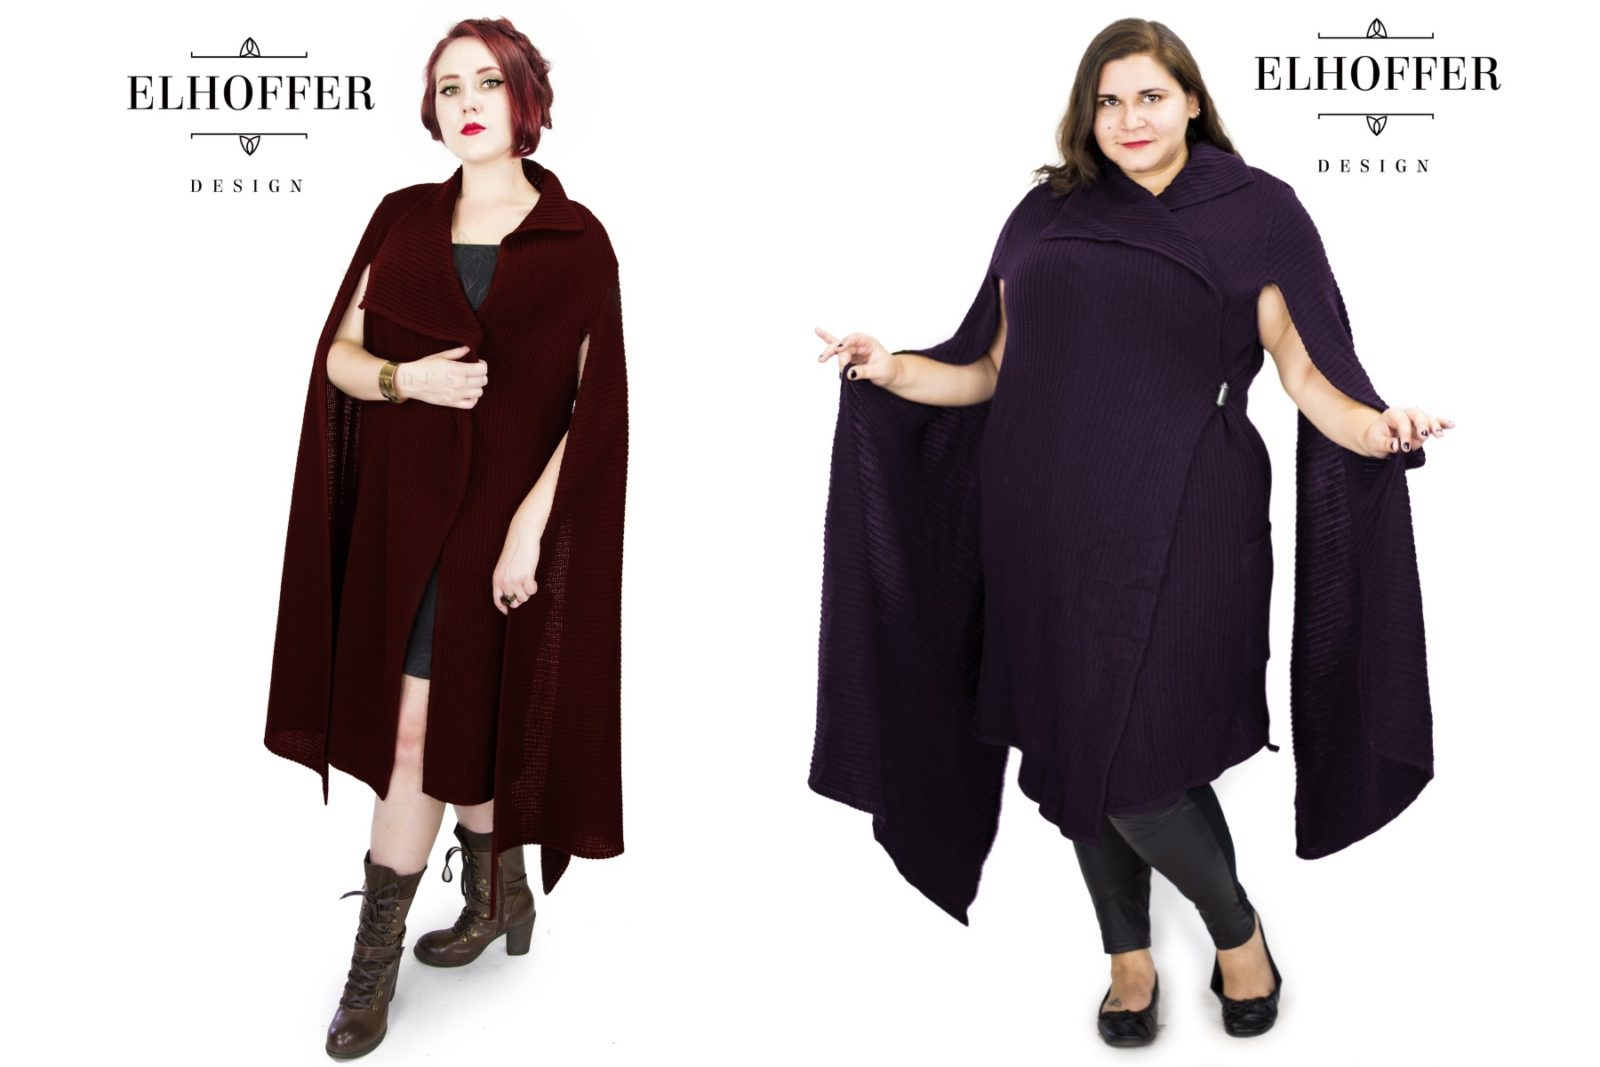 New Galactic Cardigans from Elhoffer Design